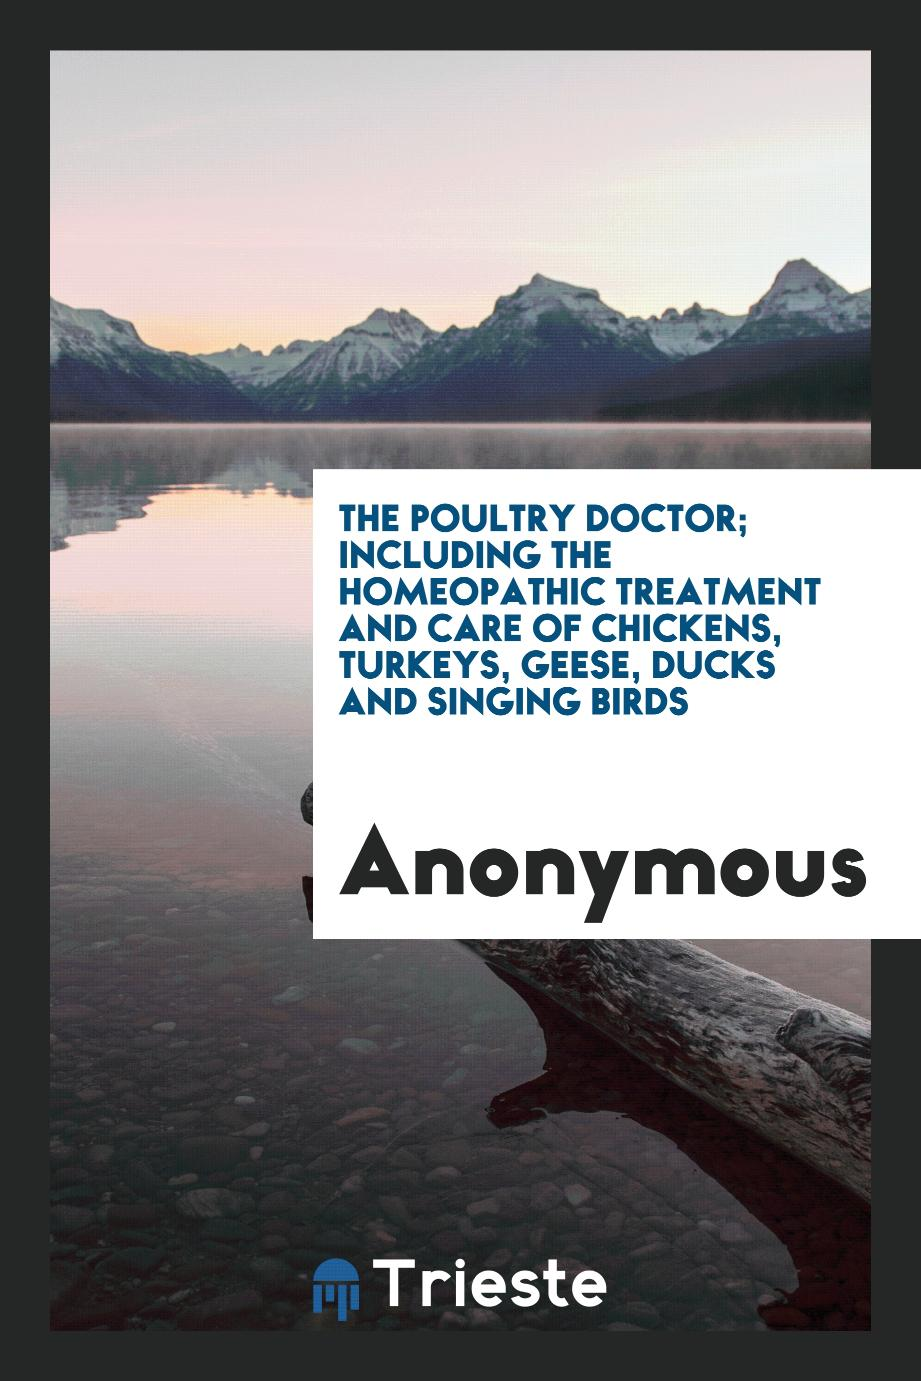 The Poultry Doctor; Including the Homeopathic Treatment and Care of Chickens, Turkeys, Geese, Ducks and Singing Birds